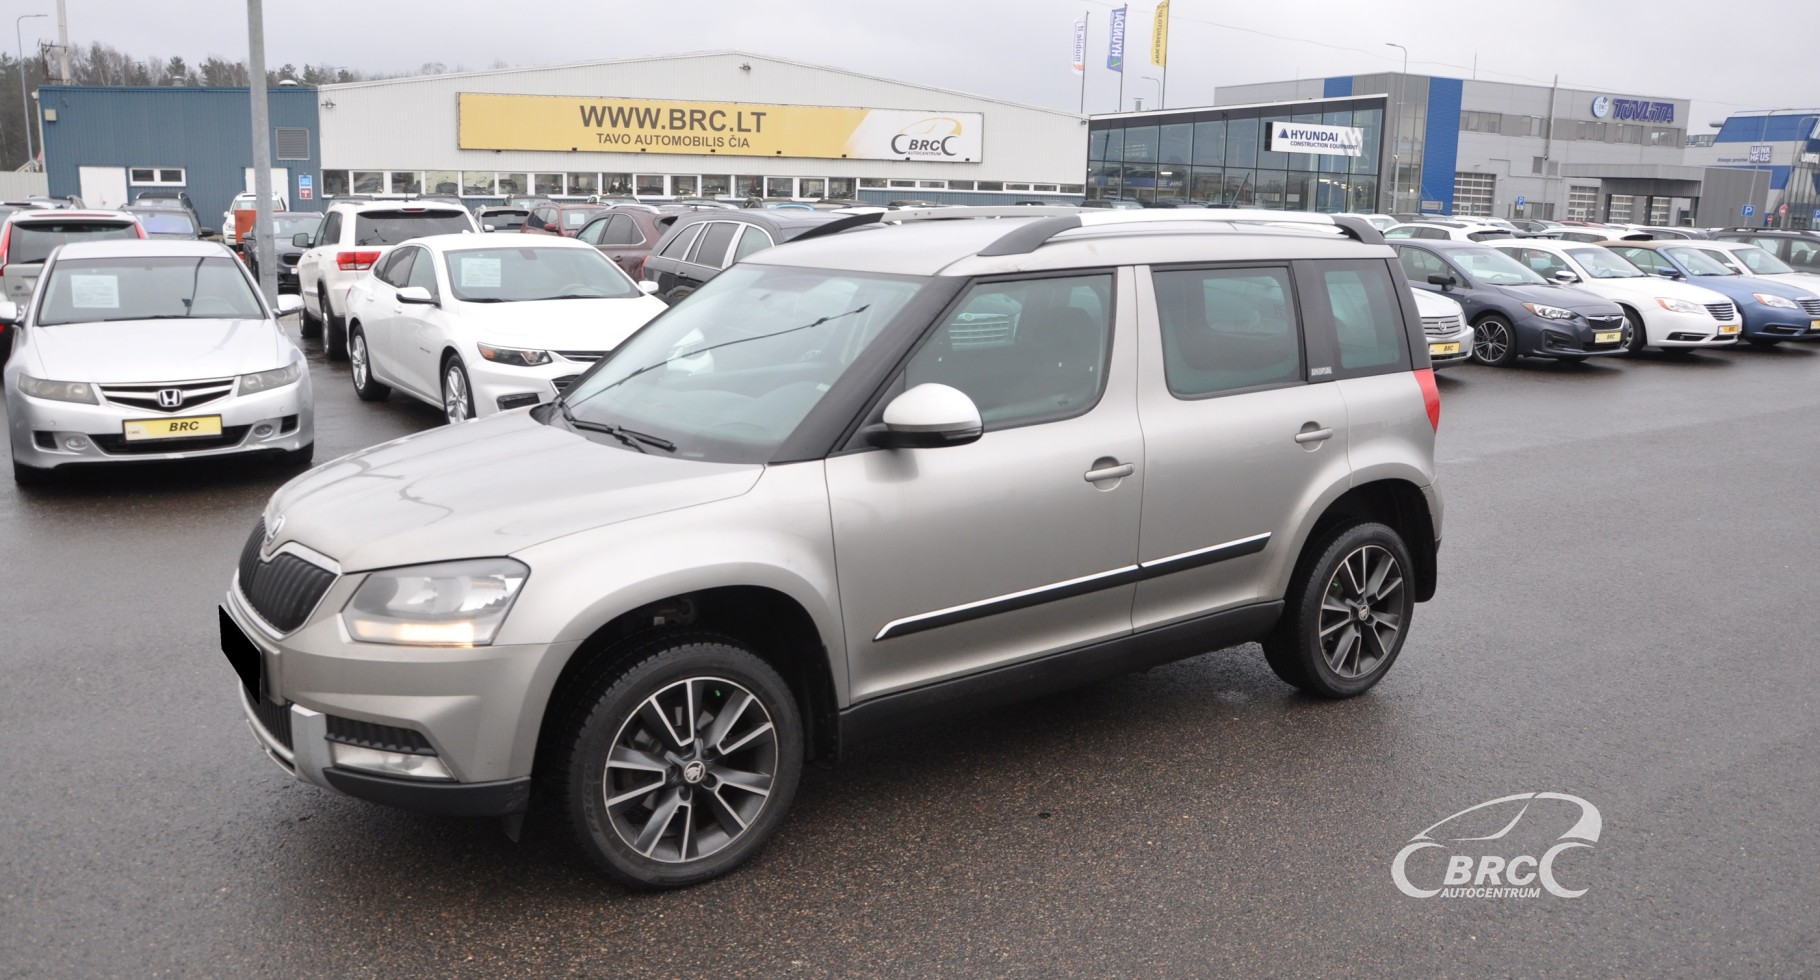 Skoda Yeti 2.0 TDI Ambition Adventure